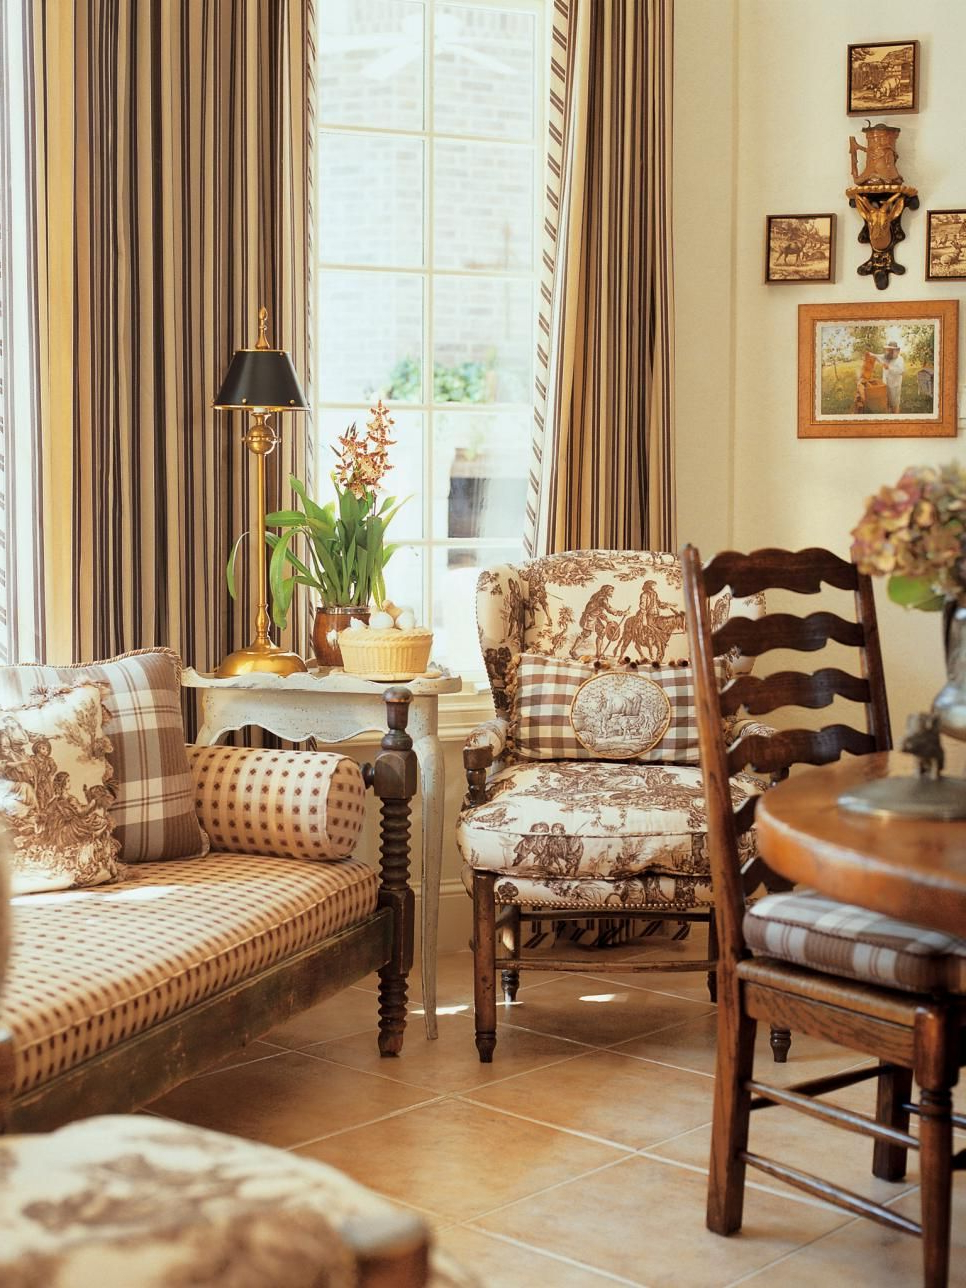 Living Room Home Decor French Country Charles Faudree